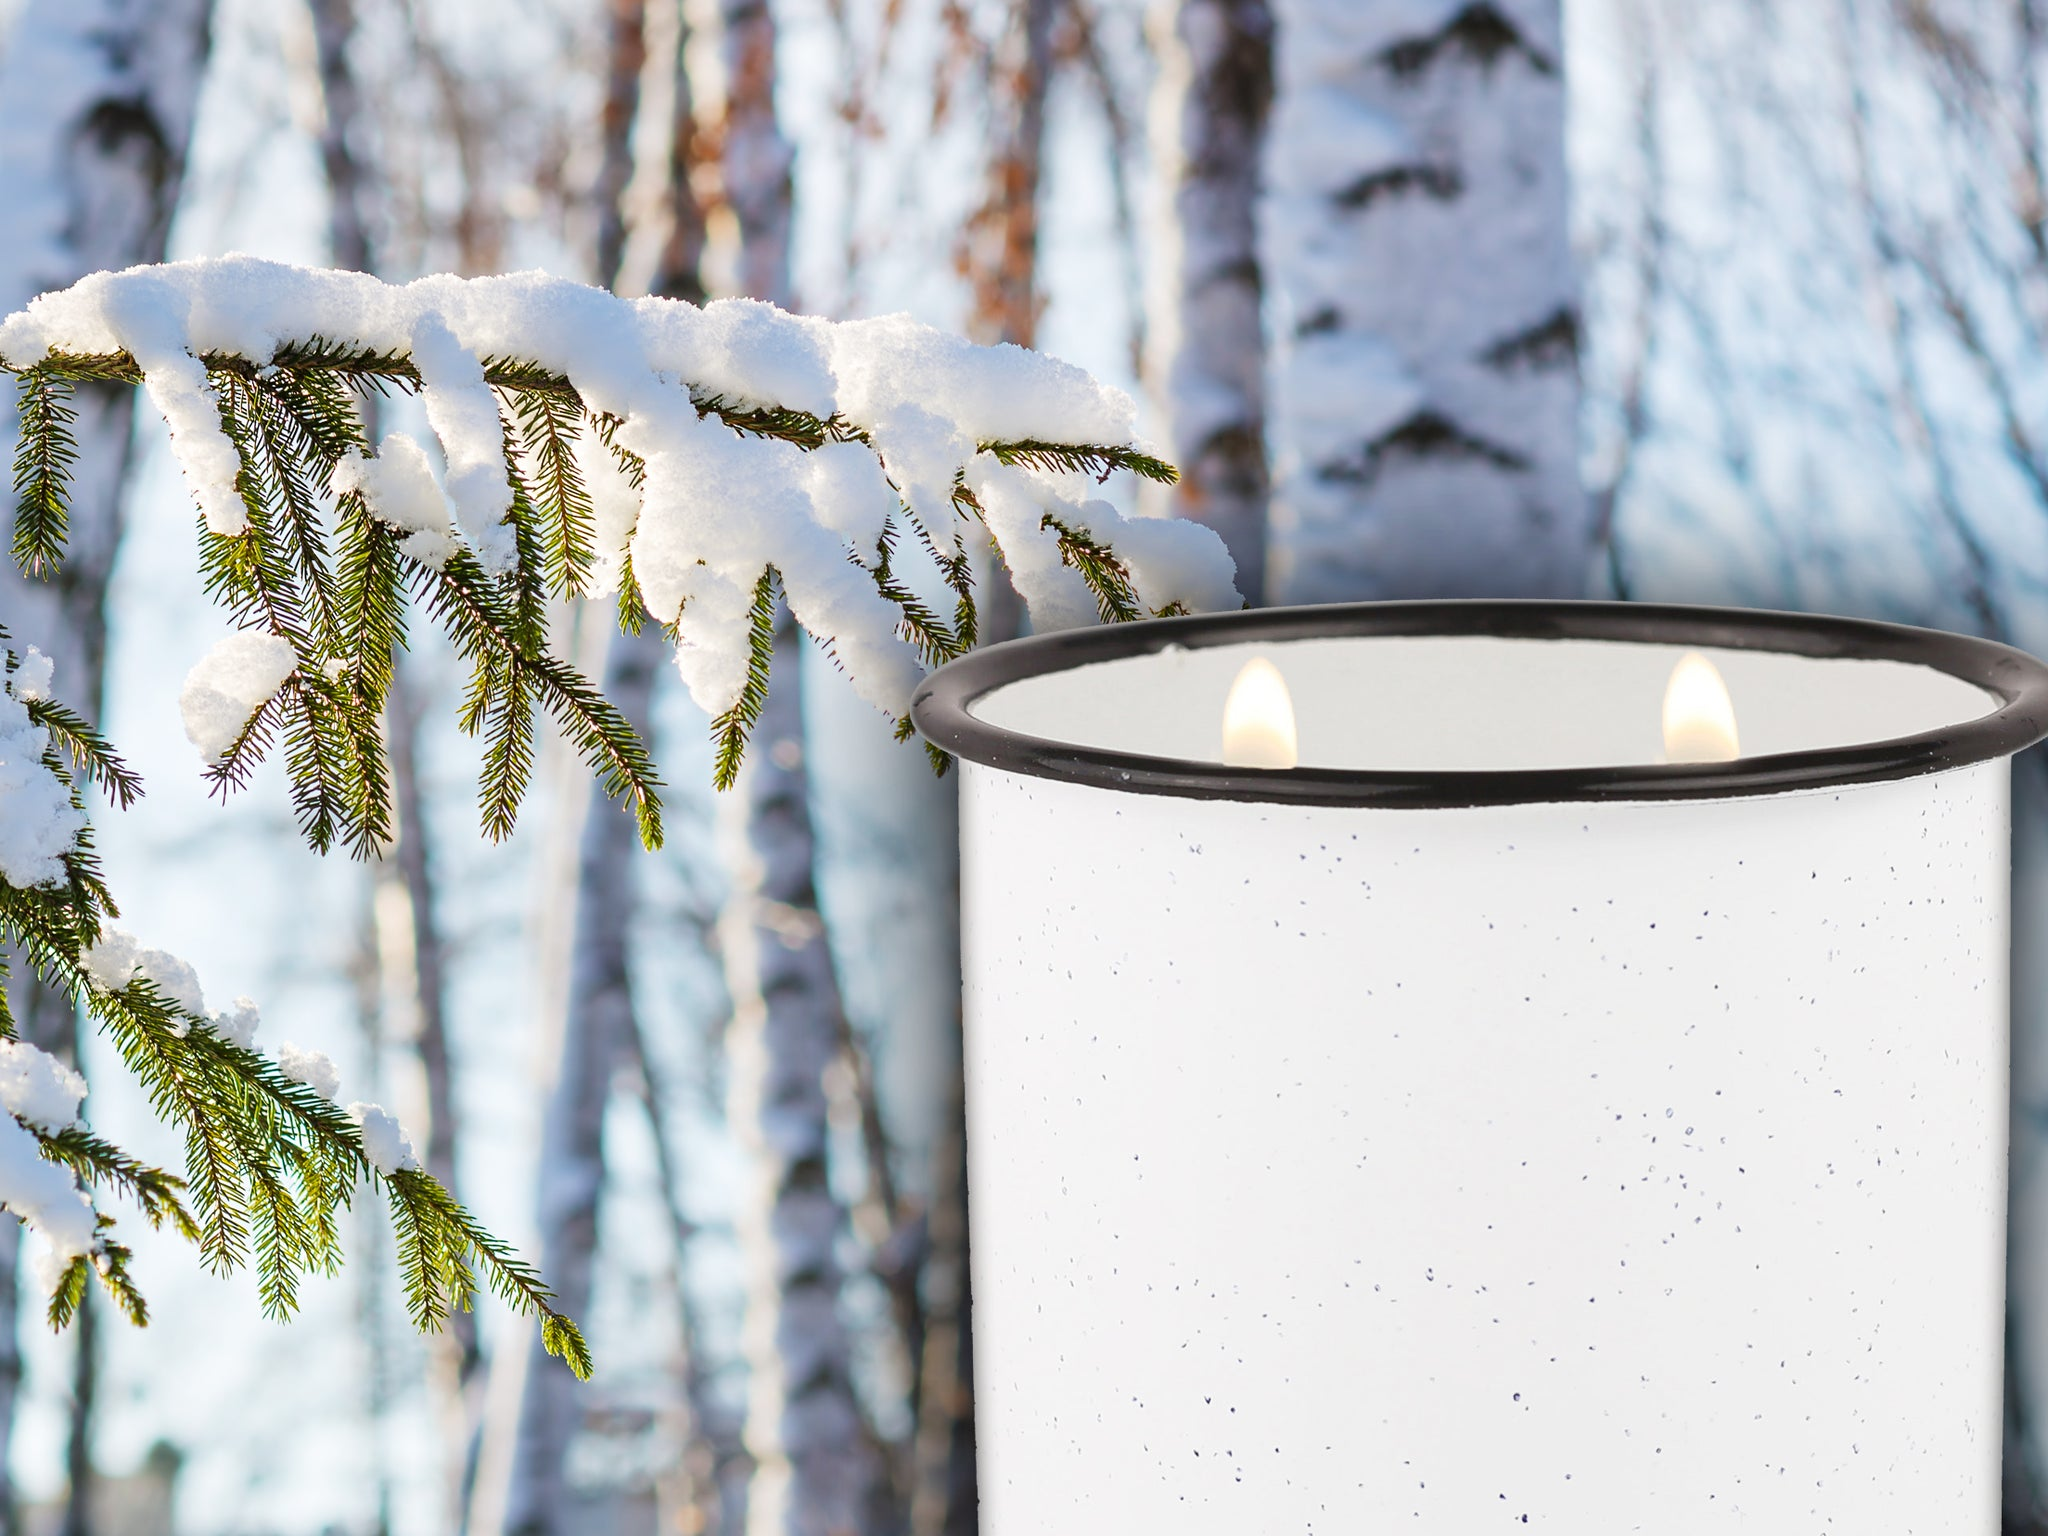 White Enamel Camping Mug Candle - White Woods & Mint - Woods Scented